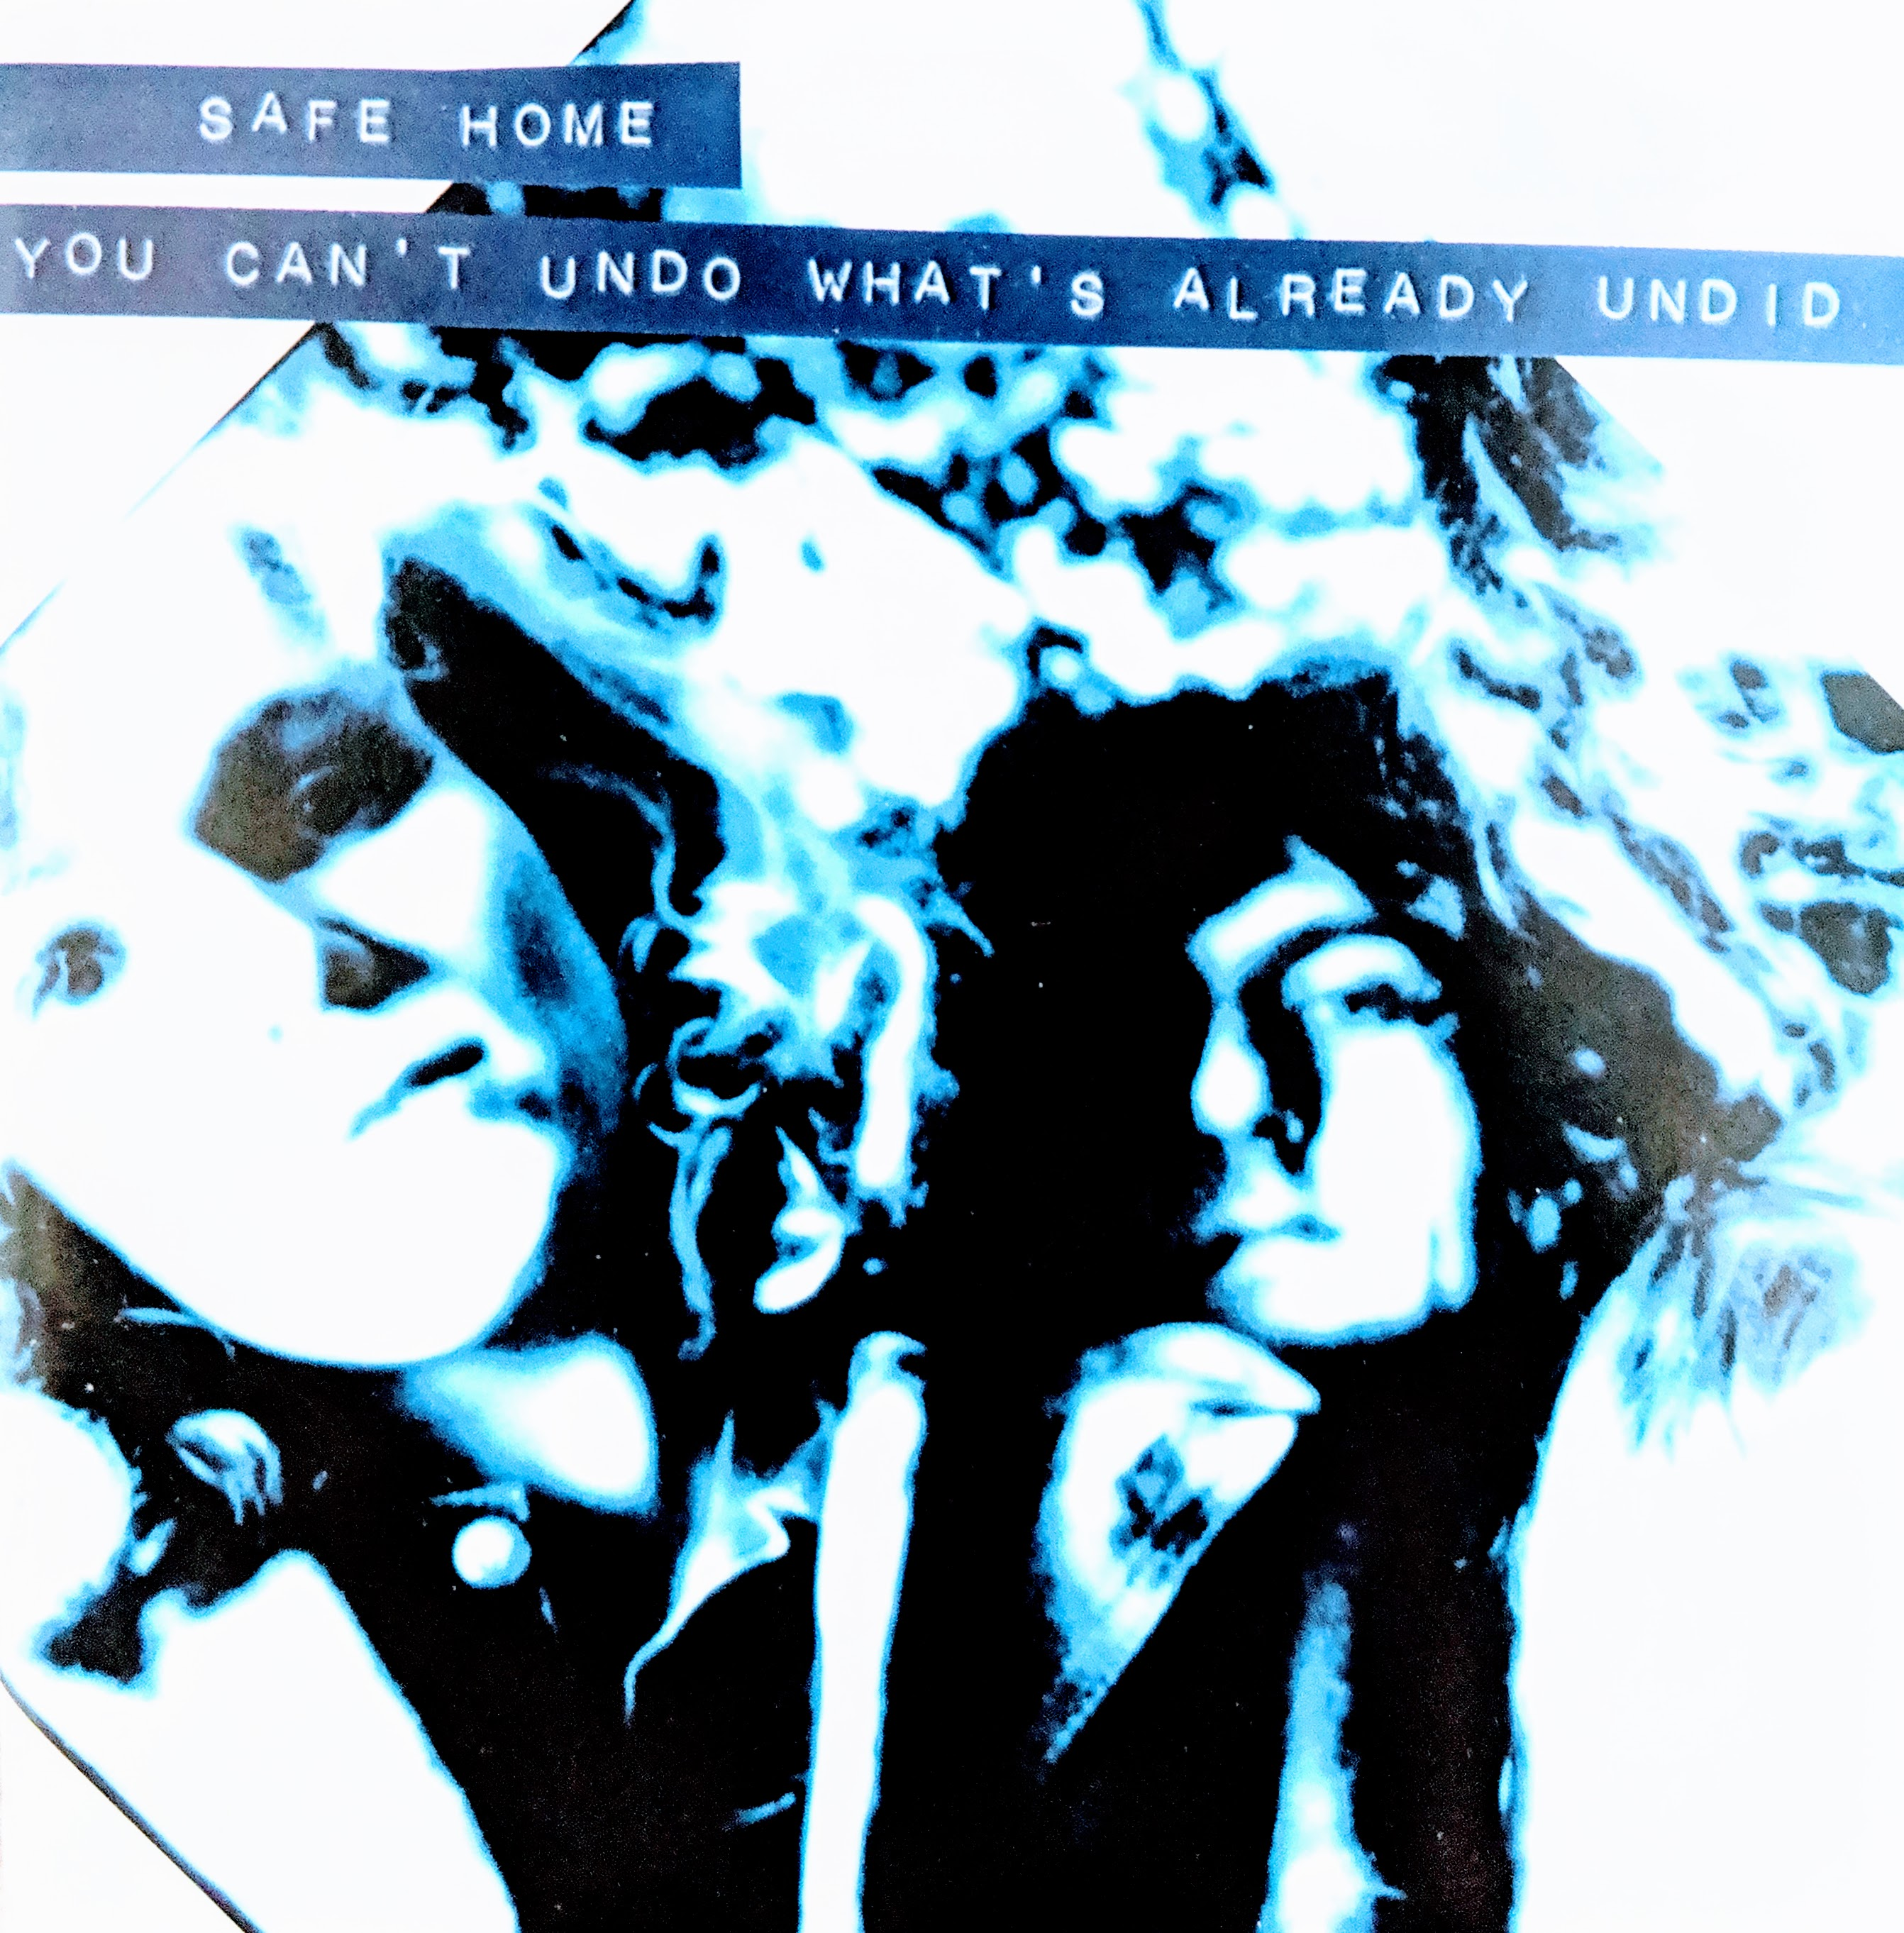 Safe Home ‎– You Can't Undo What's Already Undid CD